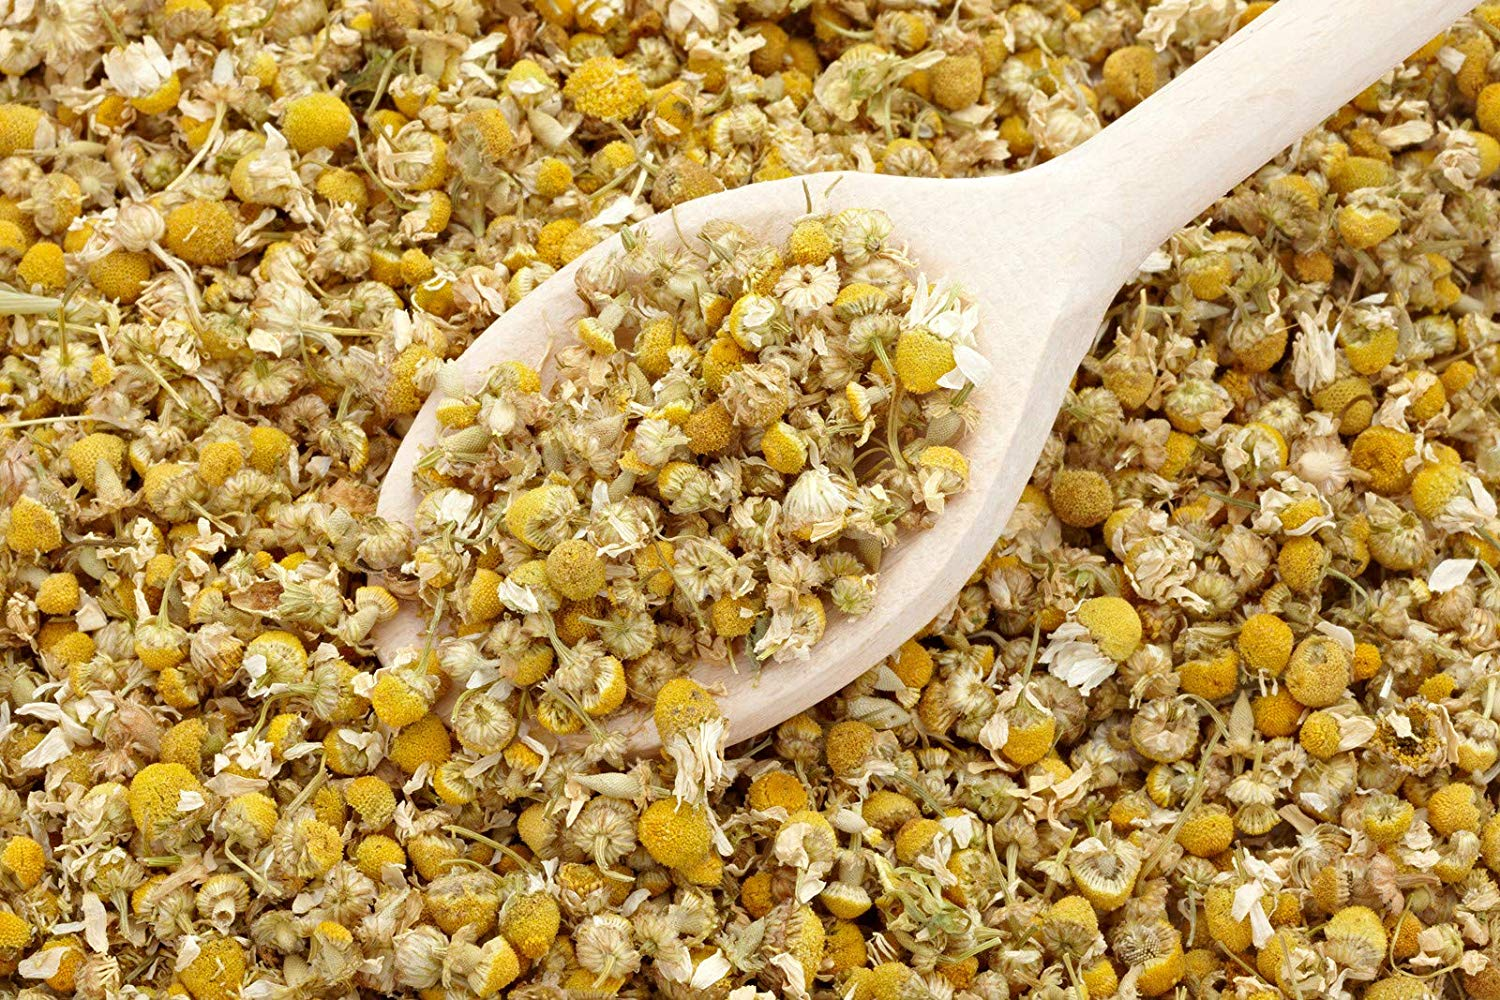 bMAKER Dried Chamomile Flowers 4 oz - Edible and Kosher Certified - Cooking, Tea, Wedding and Crafting